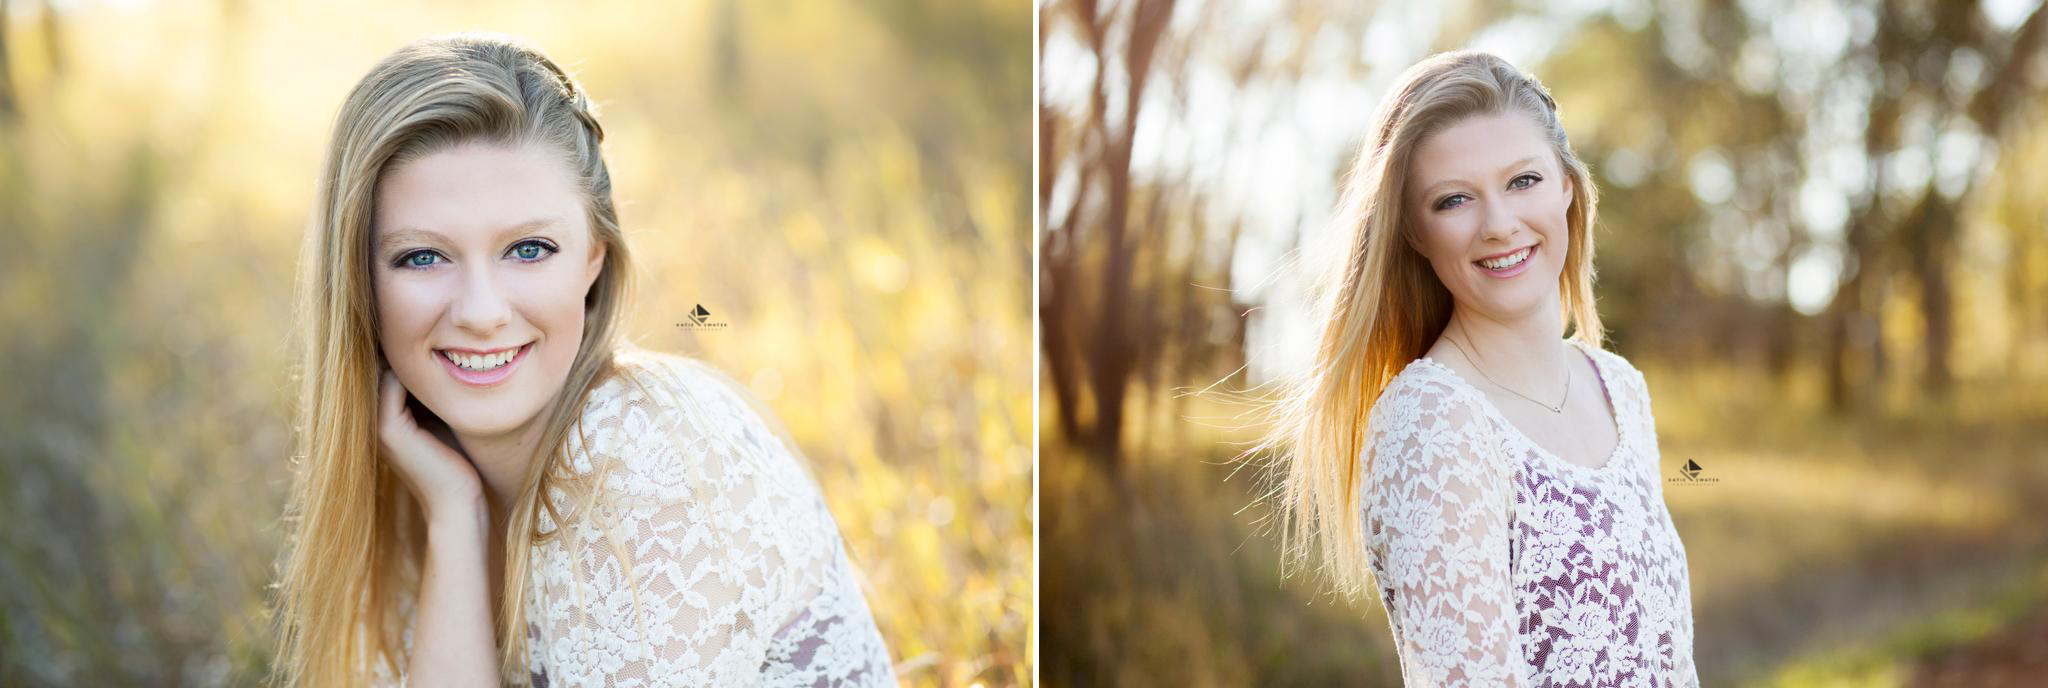 close up shots of a blonde senior girl in a white lace top in the fall foliage